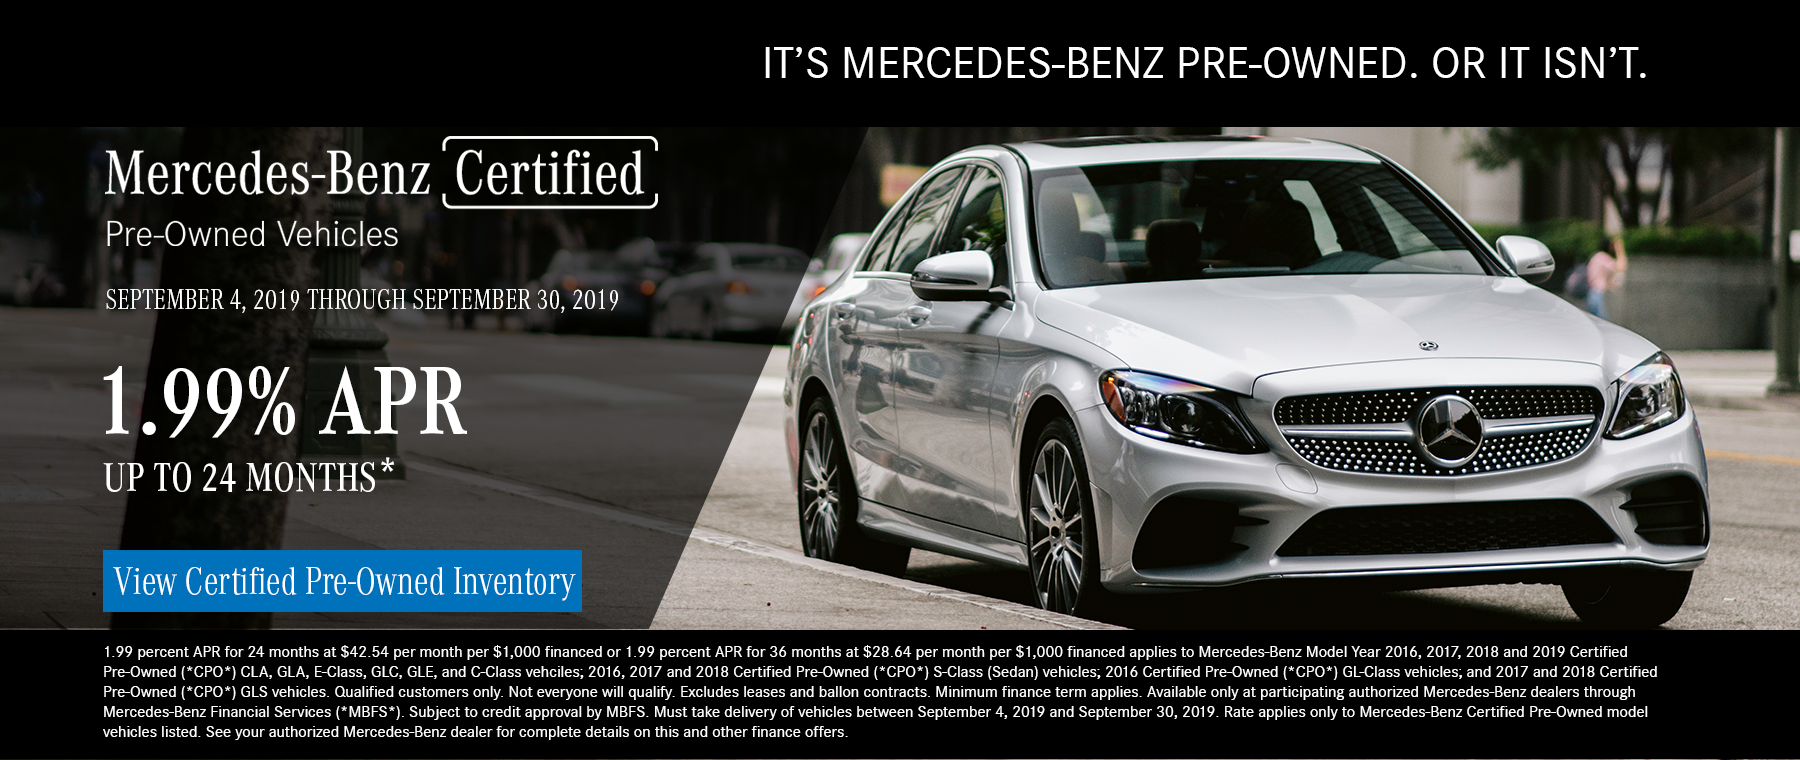 MBOB - Certified Pre-Owned - 1.99% APR Up to 24 months*